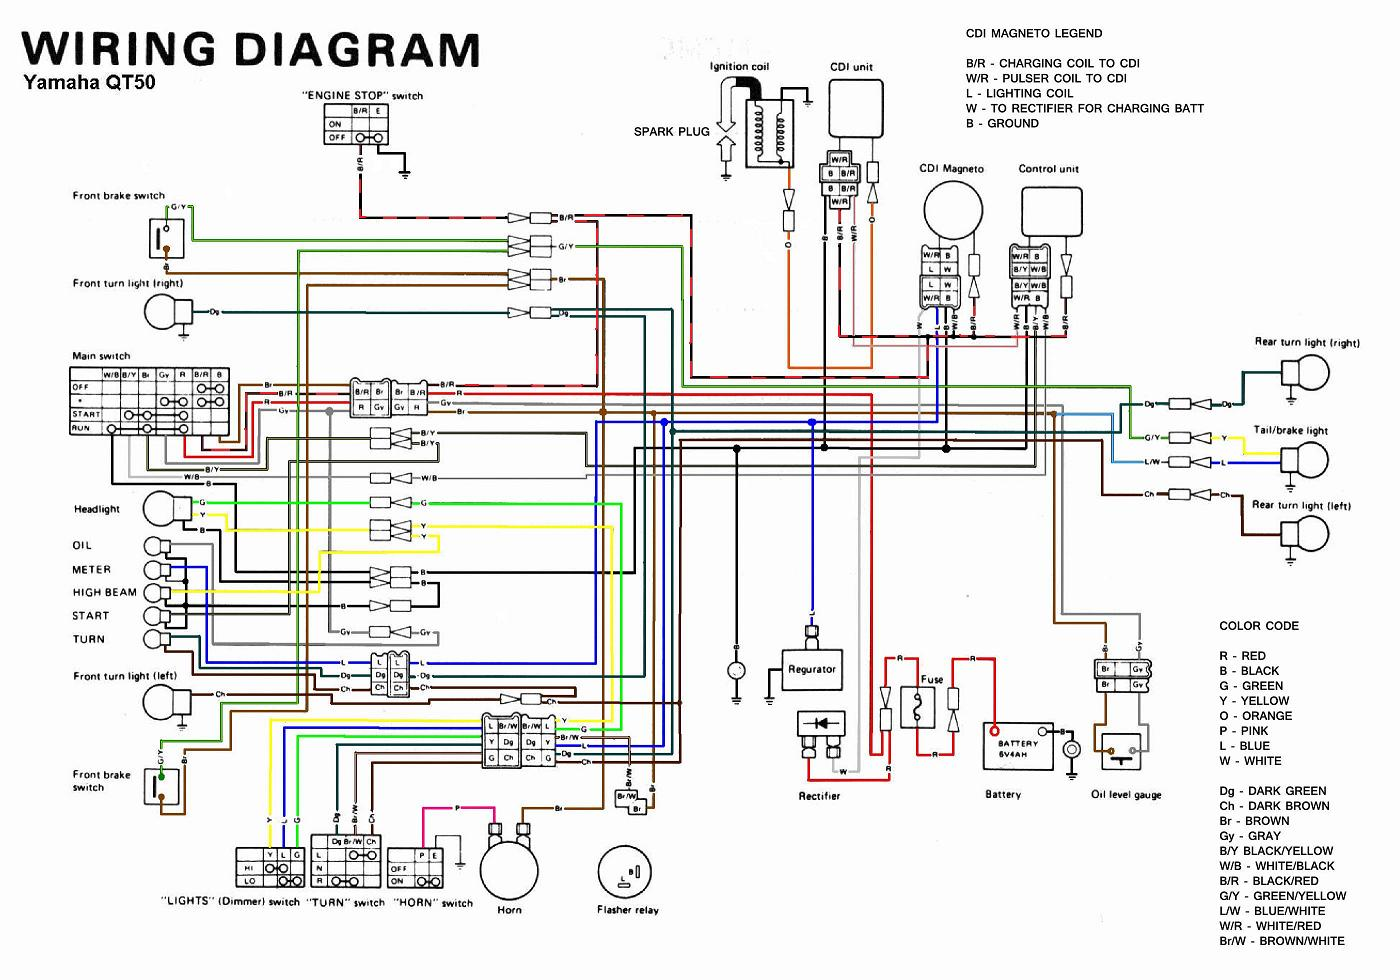 Yamaha QT50 wiring diagram – Yamaha QT50 luvin and other nopeds on